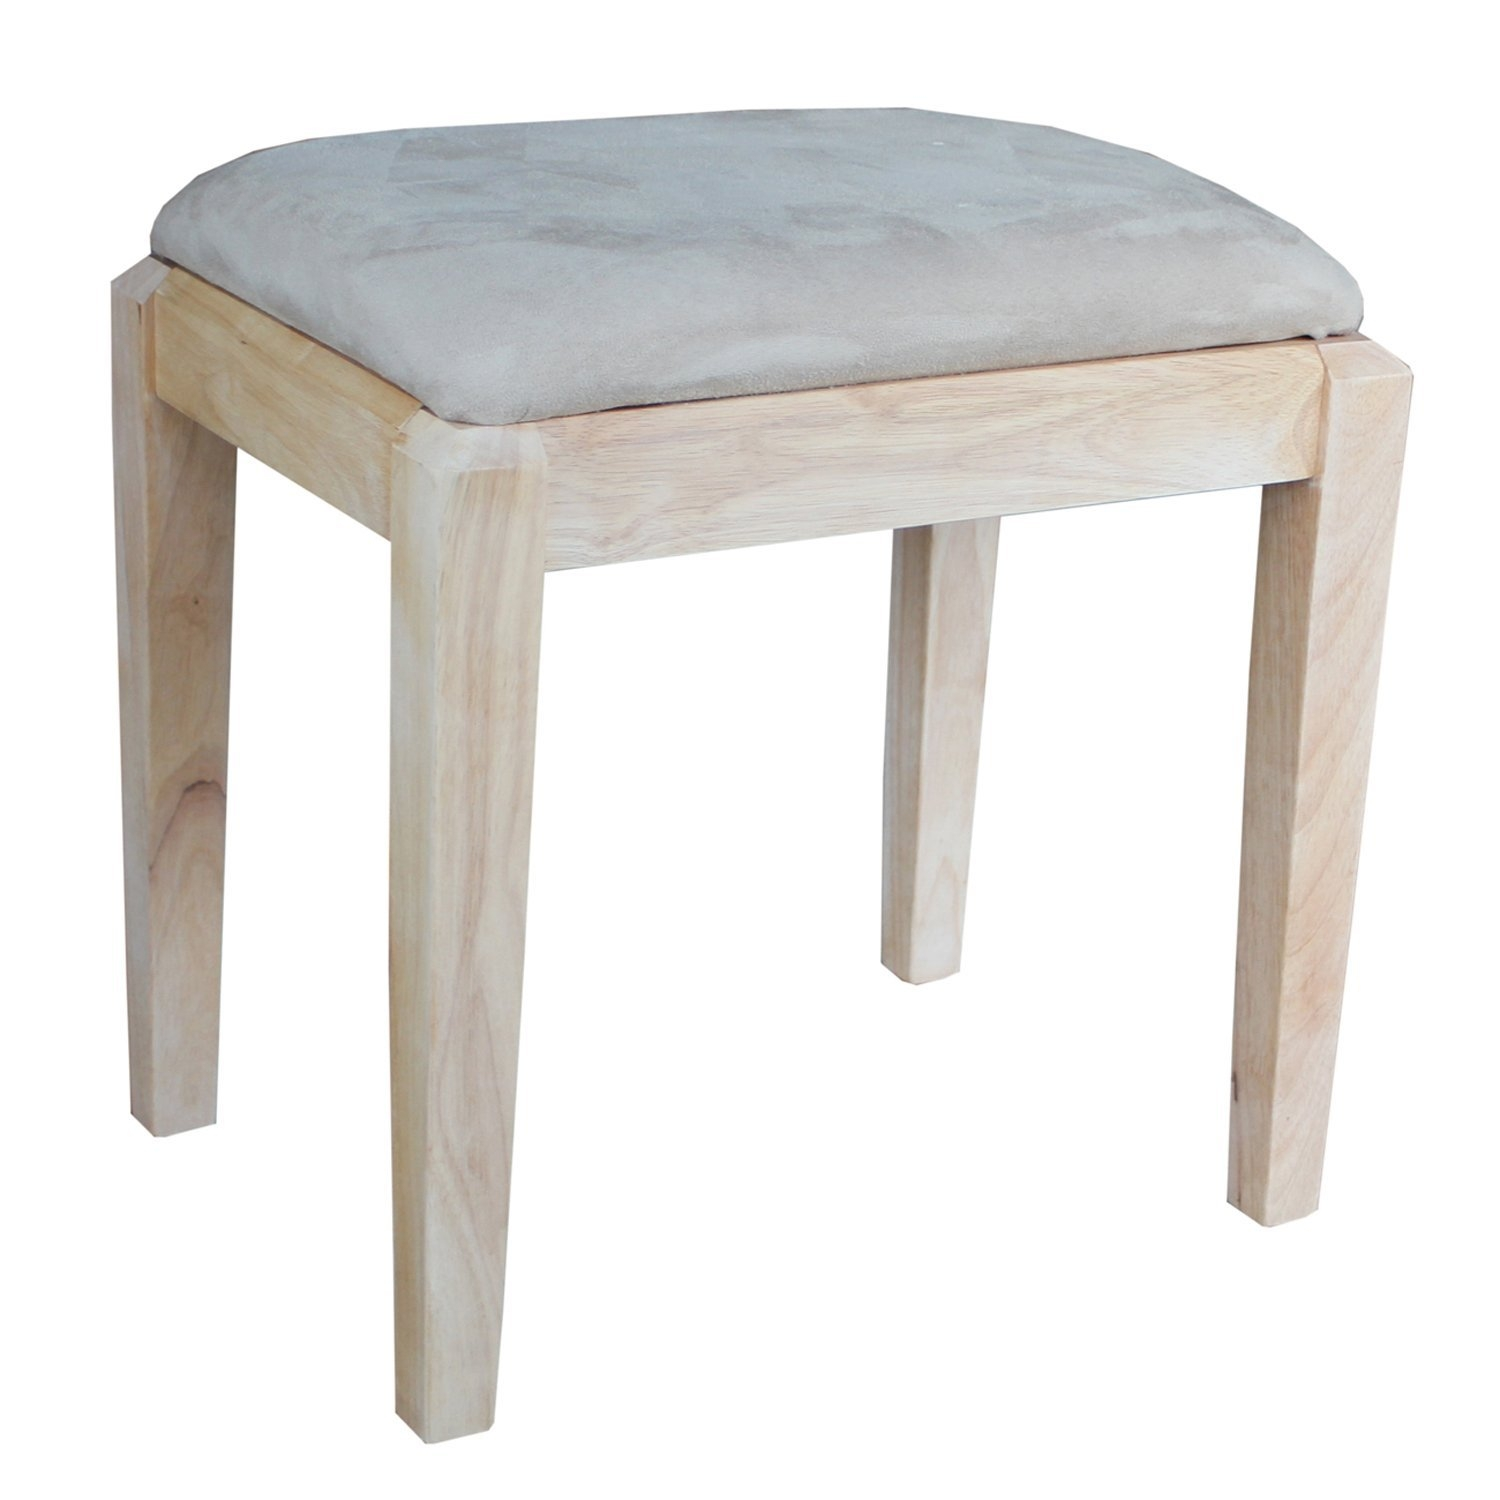 International Concepts Unfinished Vanity Bench, Unfinished by Whitewood Industries DBA International Concepts - DROP SHIP